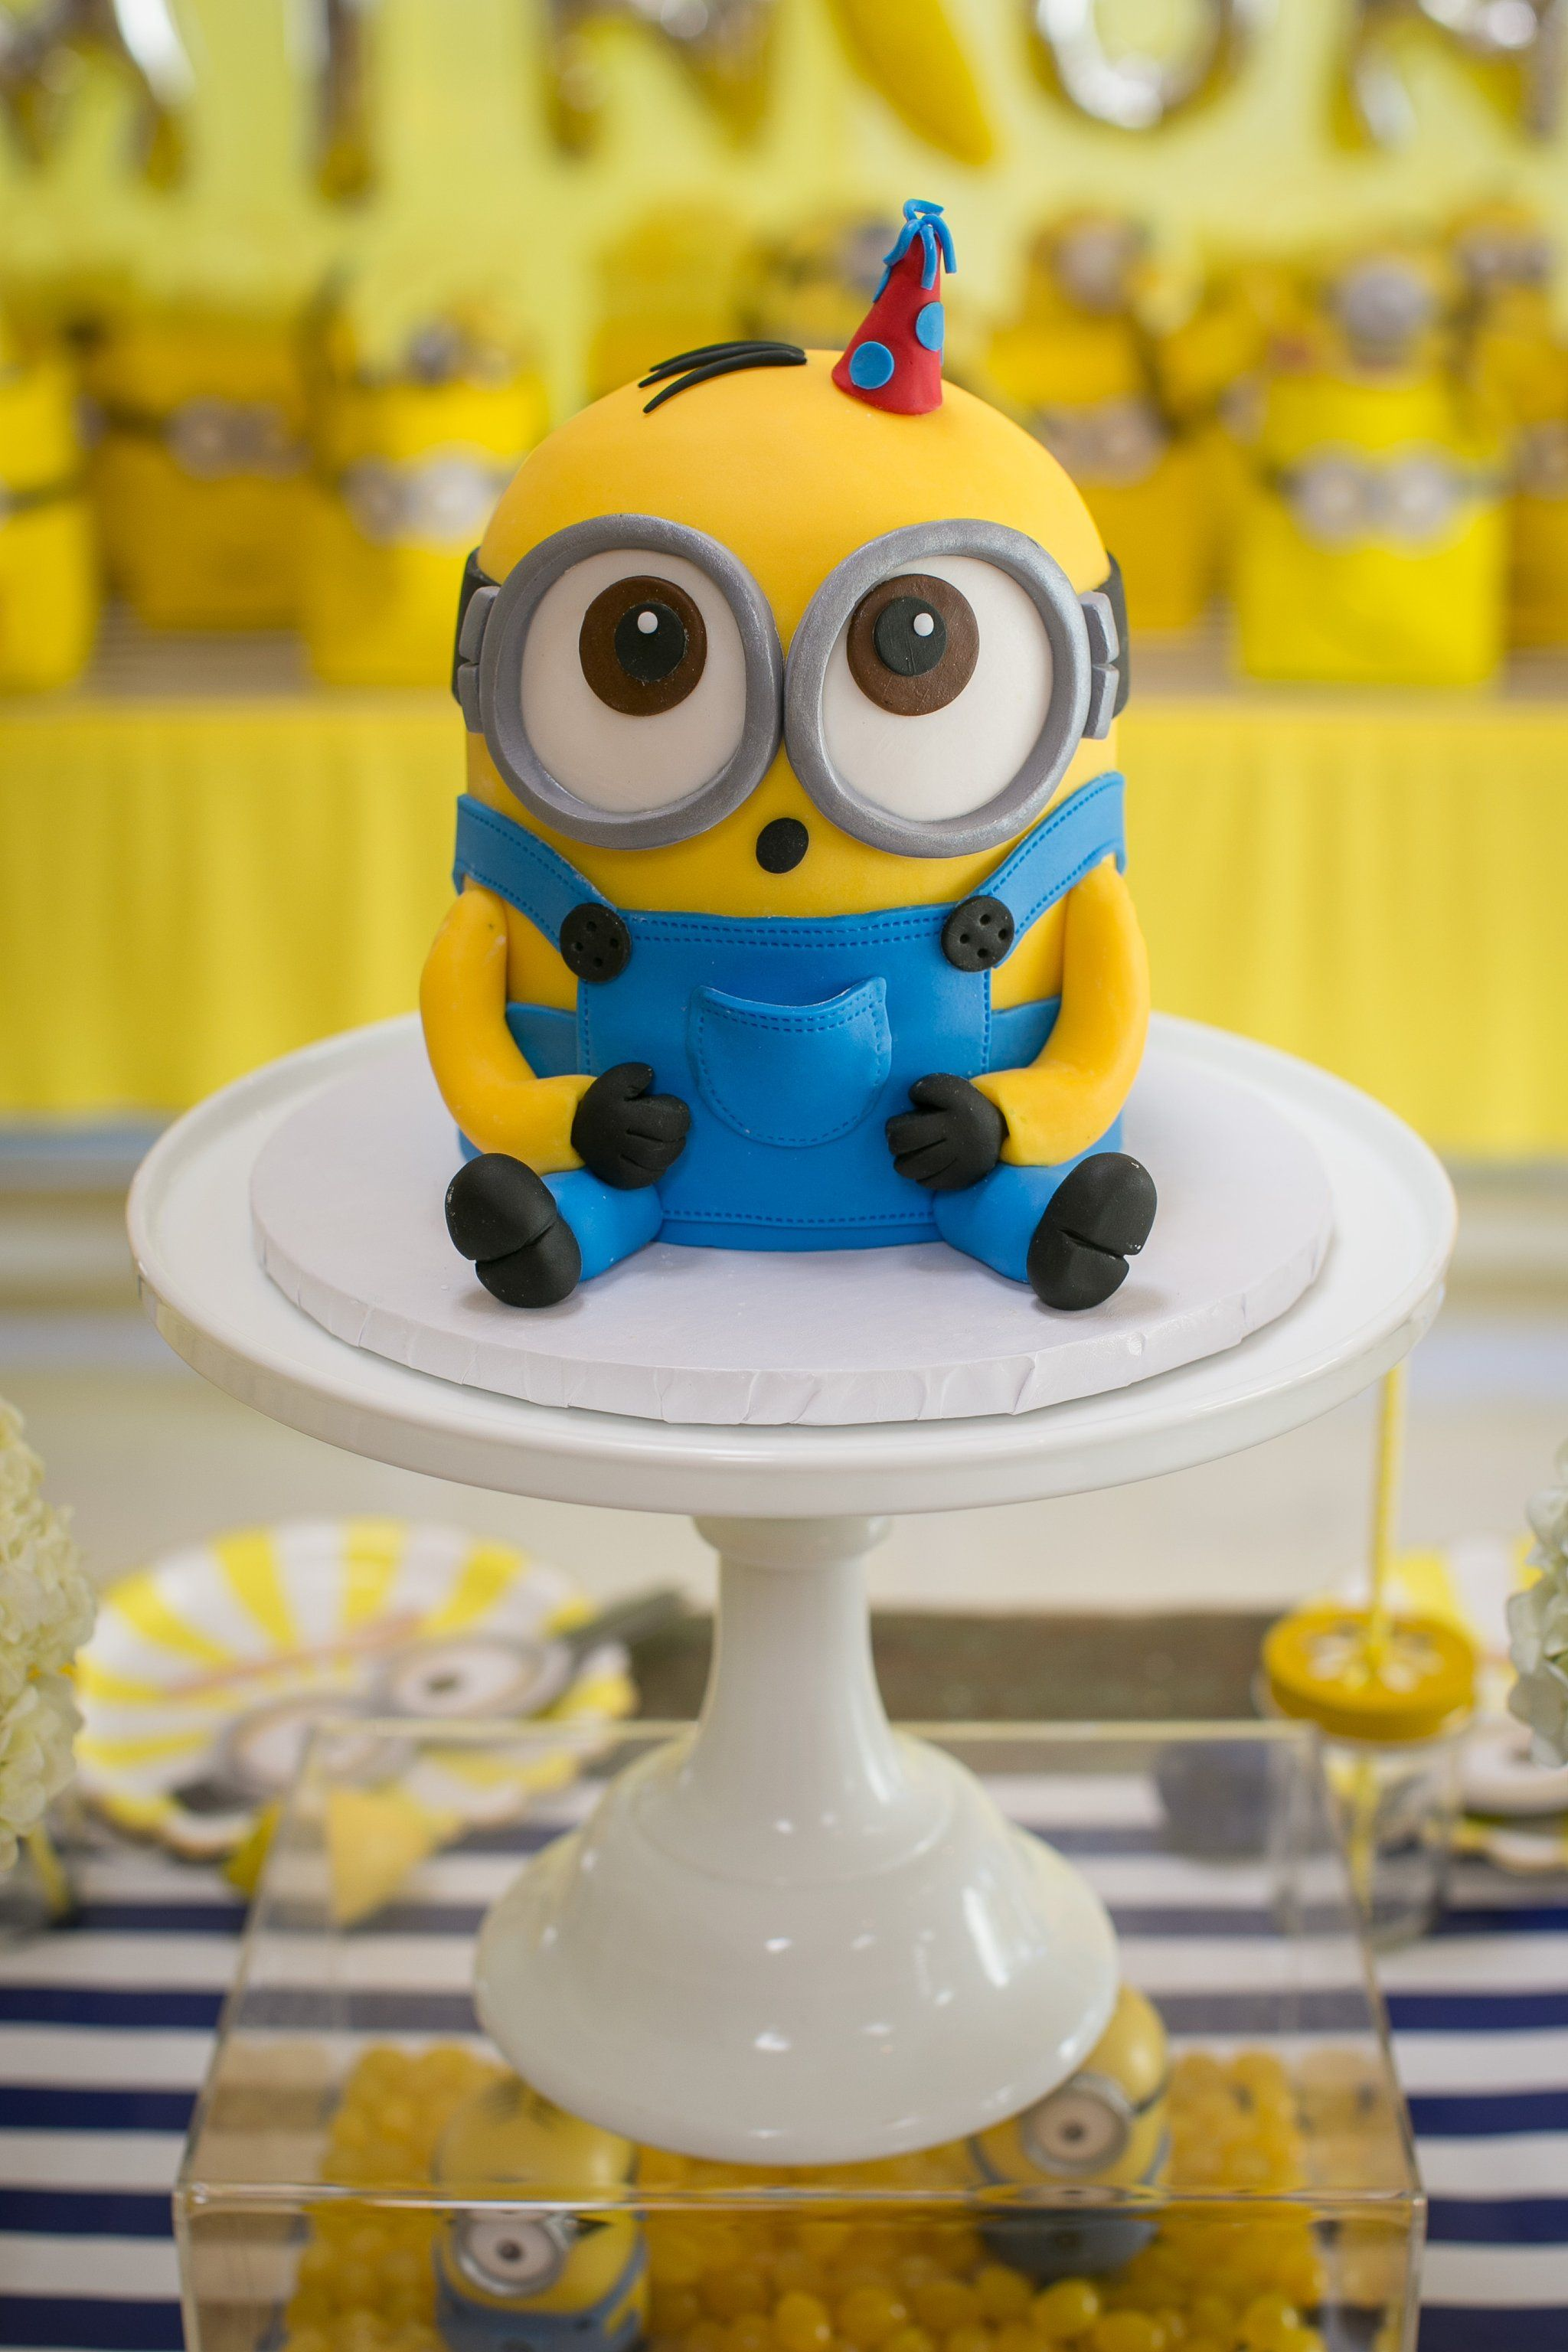 This One In A Minion Birthday Party Will Have Your Kiddo Going Bananas In 2020 Minion Birthday Party Minion Birthday Birthday Cake Kids